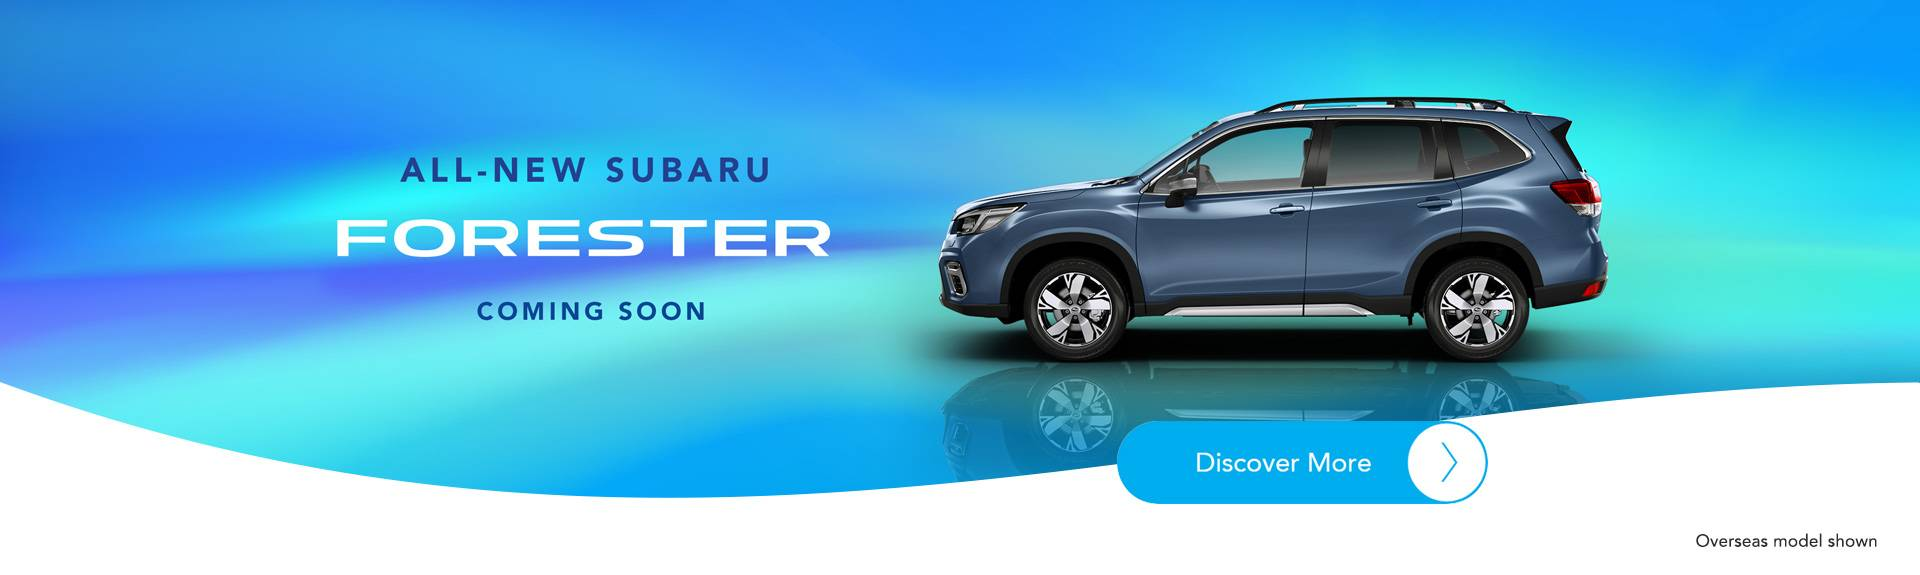 New Subaru Forester Coming Soon